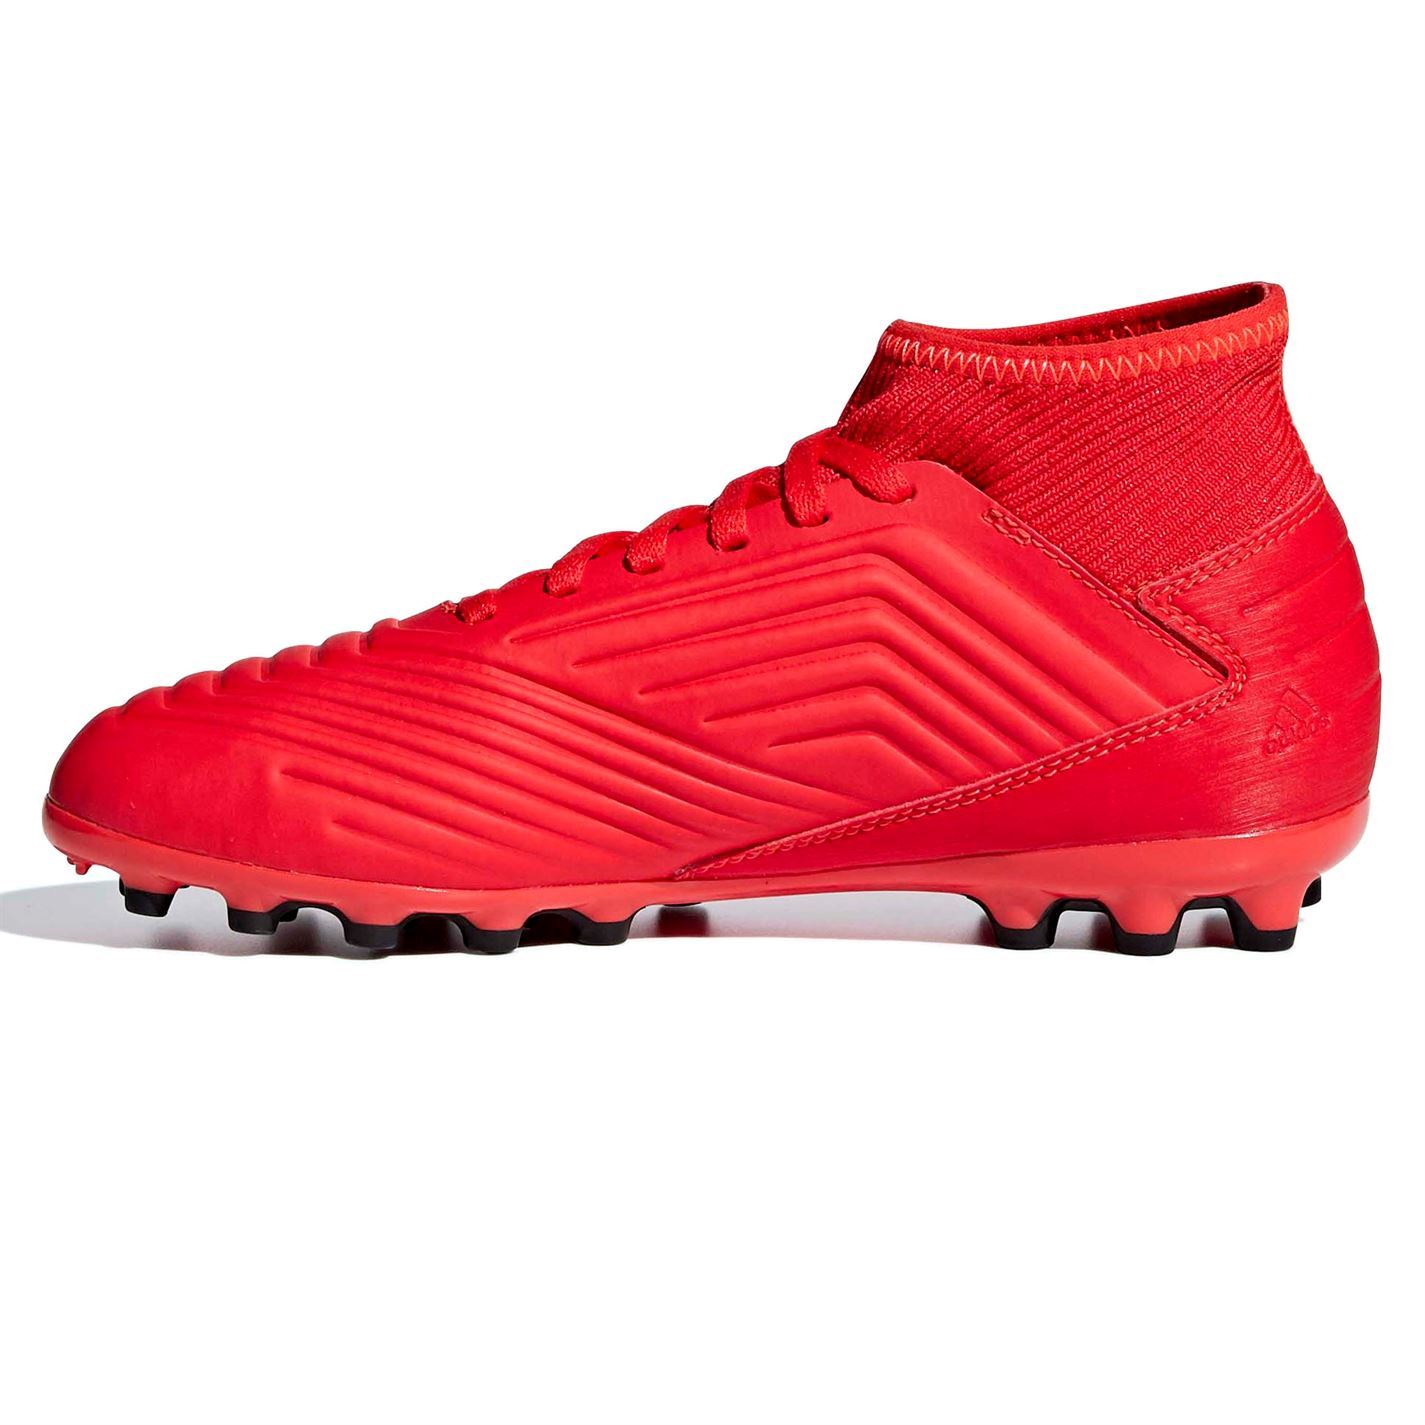 finest selection no sale tax hot product Details zu Adidas Predator 18.3 Künstliche Boden Fußball ...